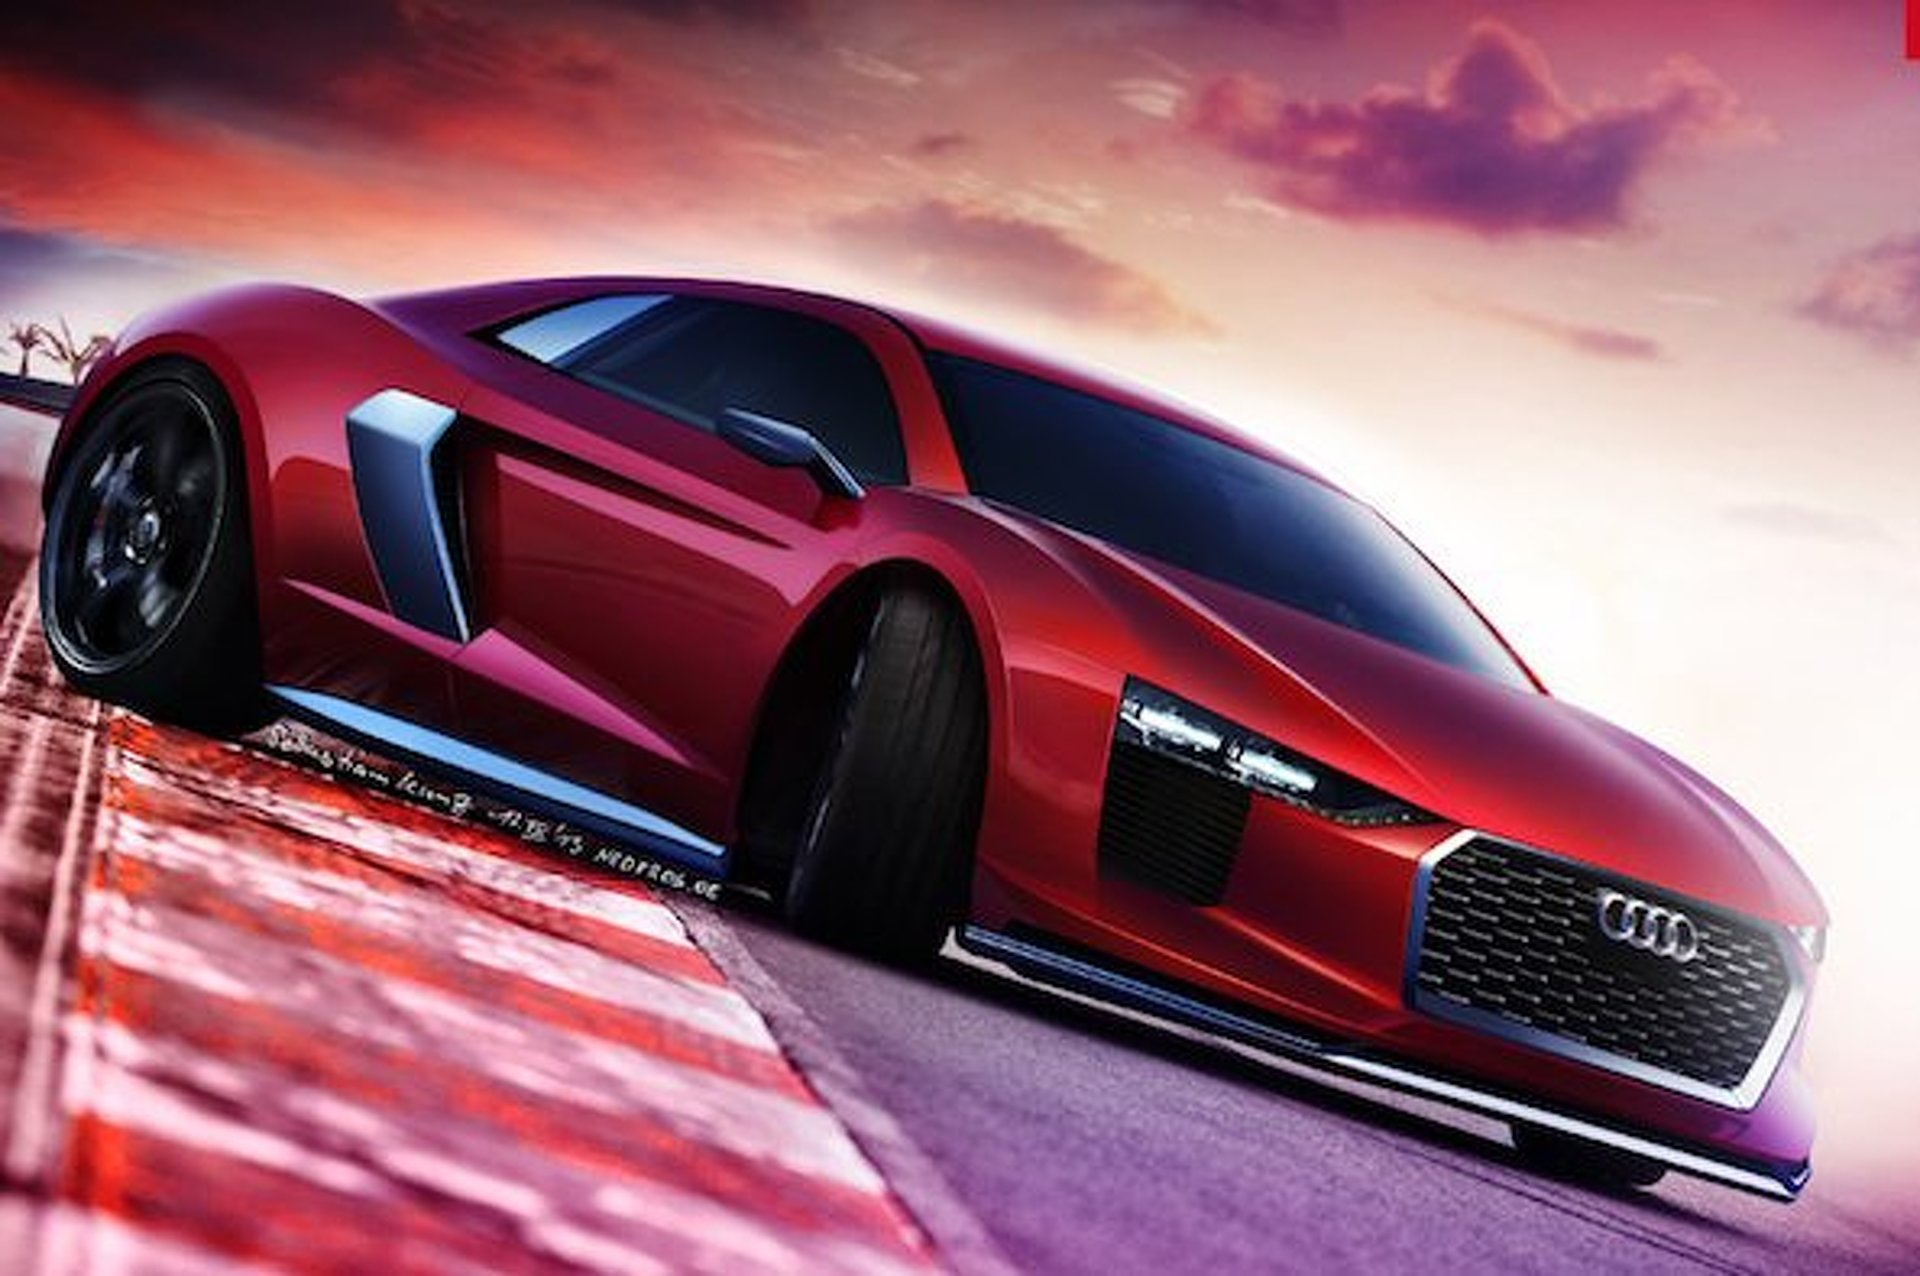 2015 Audi R8 Gets Digitally Rendered